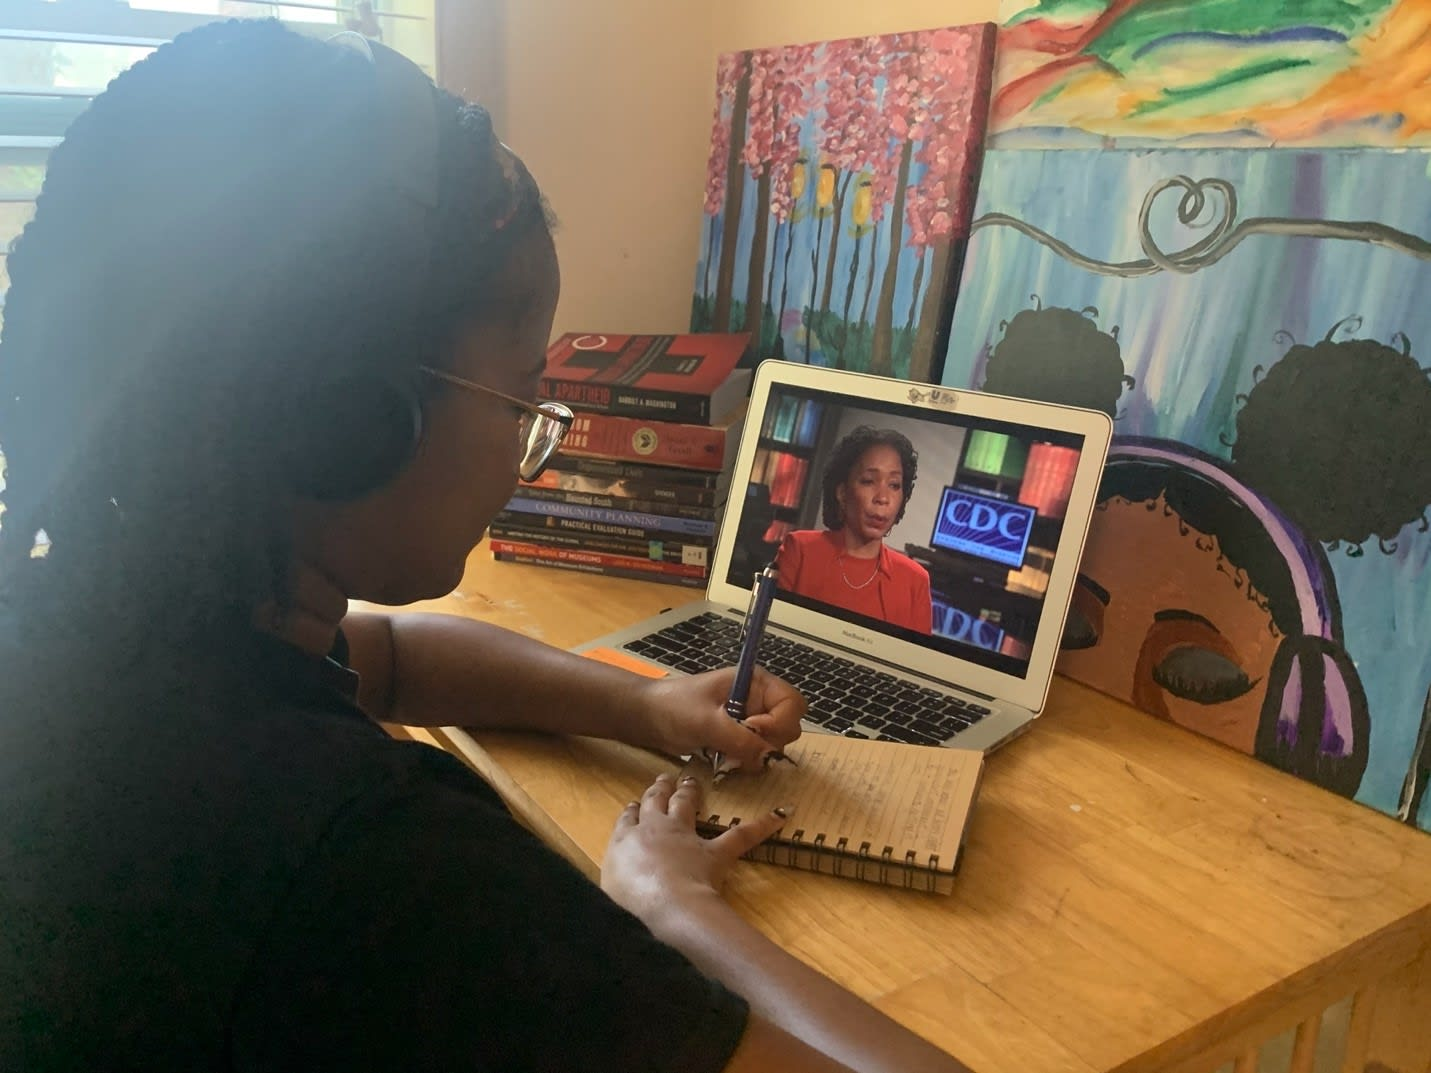 Deniseya Hall sits at a desk with art behind the computer, taking notes on a notebook while watching a presentation on a laptop from the CDC.